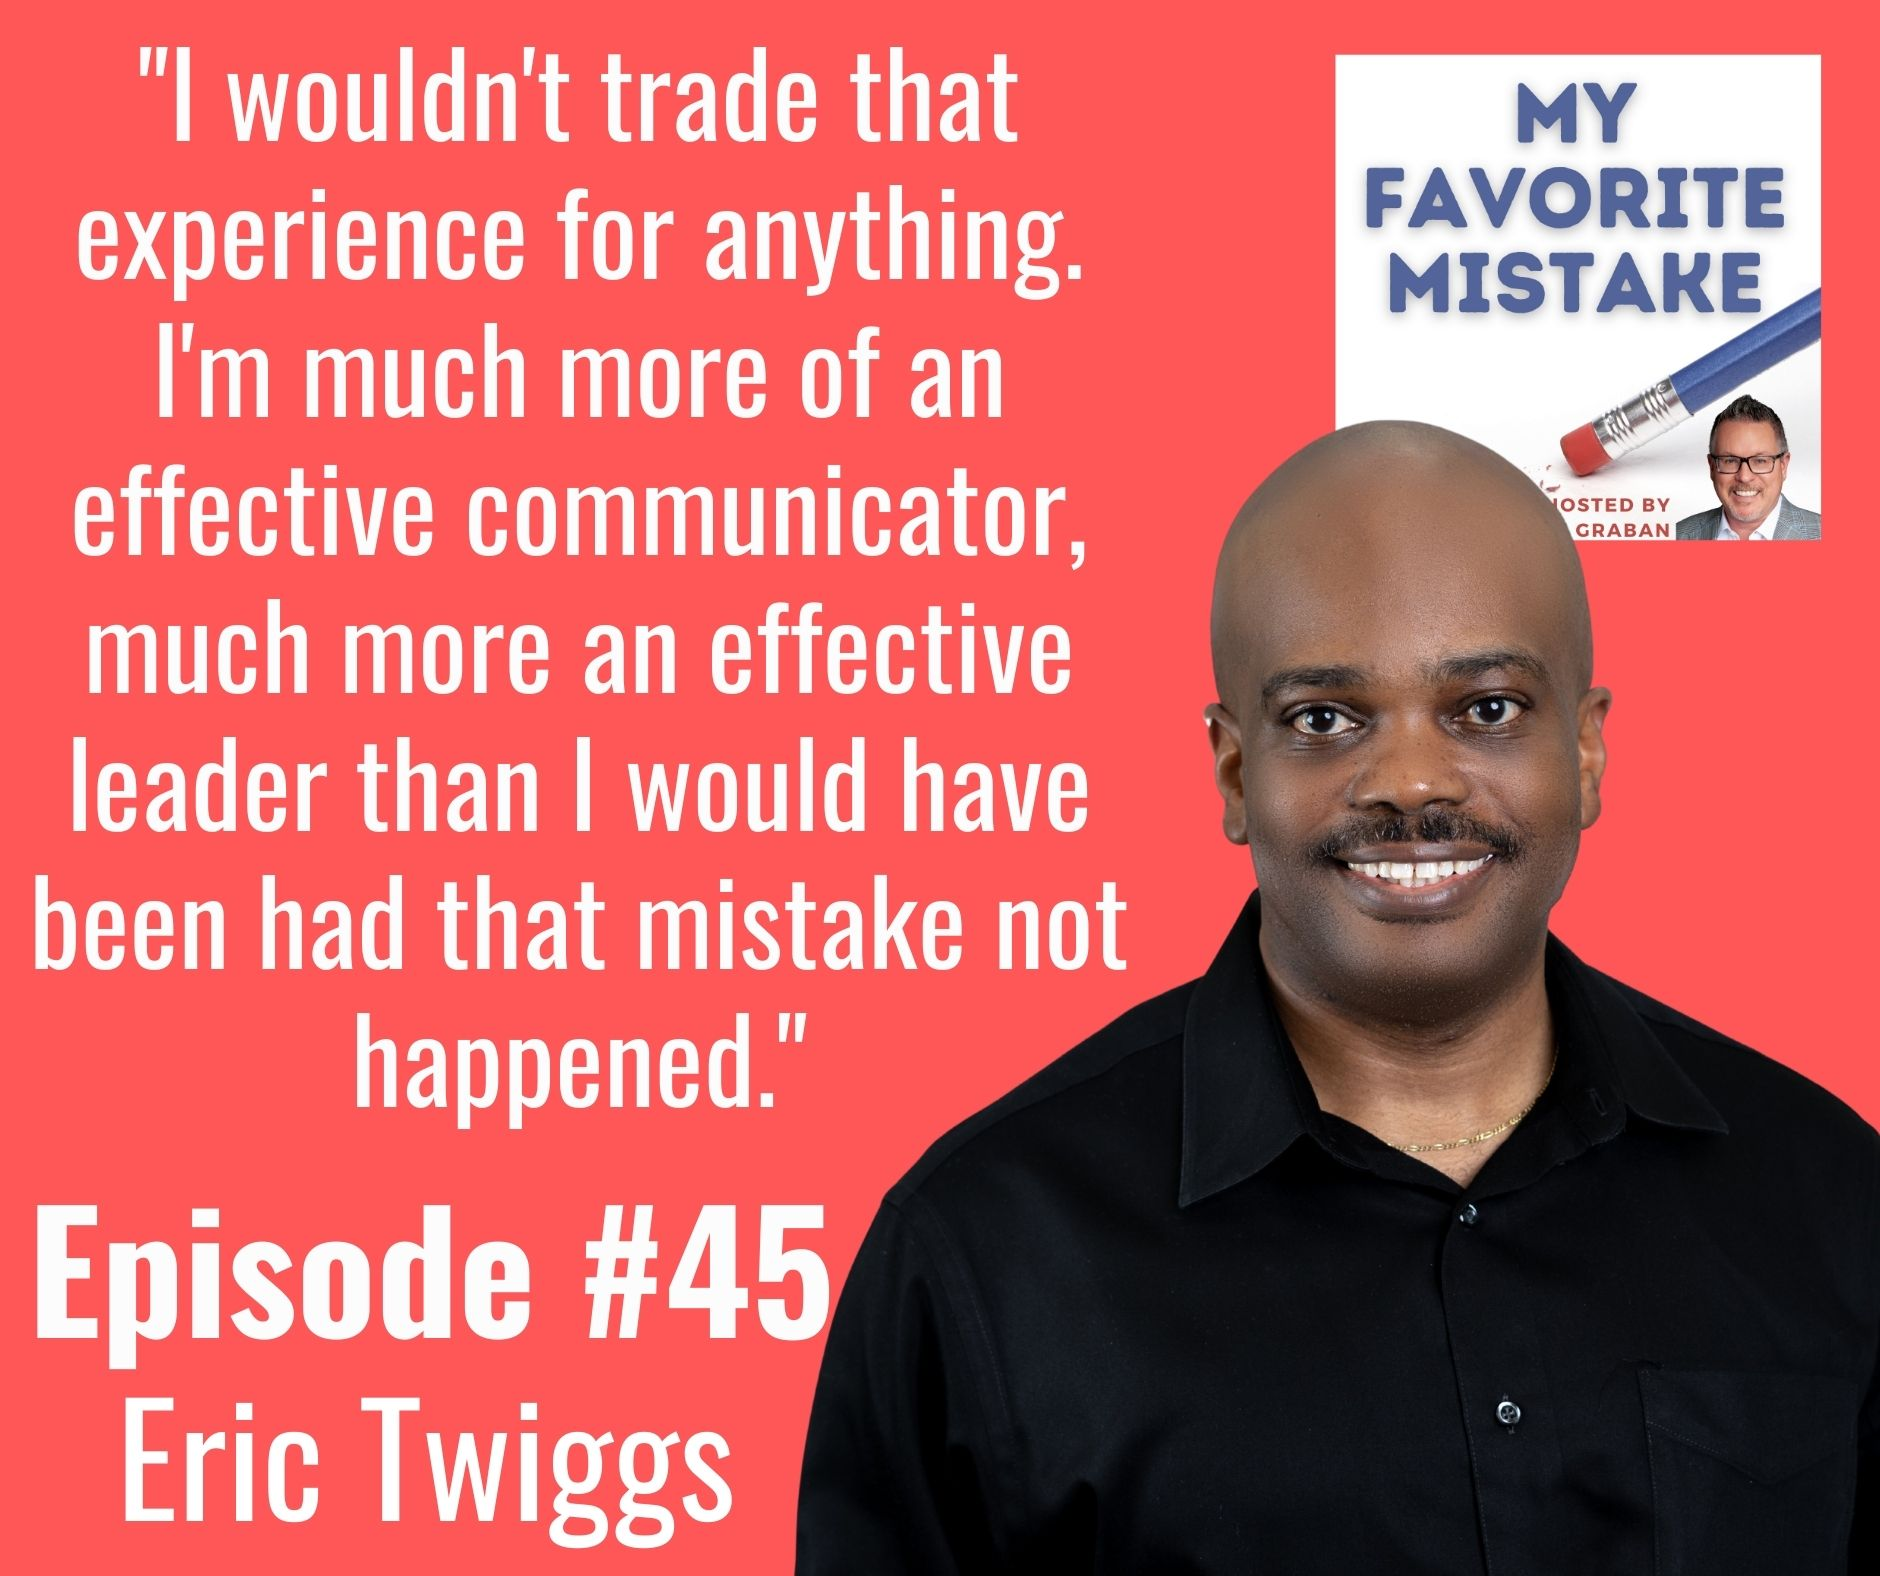 """""""I wouldn't trade that experience for anything. I'm much more of an effective communicator, much more an effective leader than I would have been had that mistake not happened."""""""